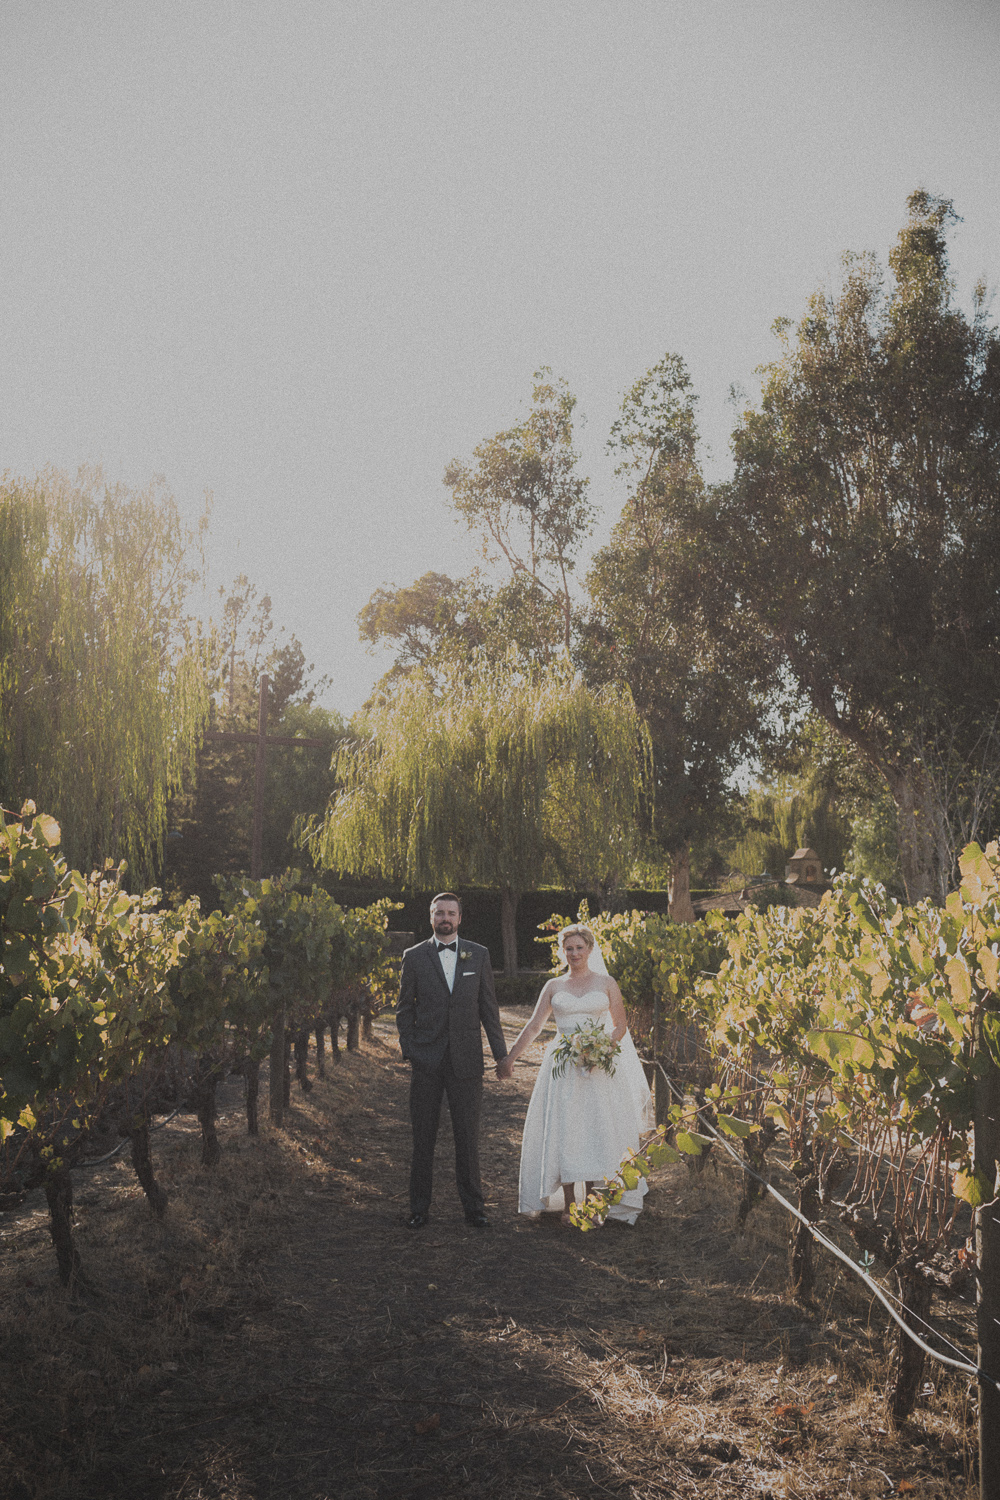 Destination Sonoma Wedding at Jacuzzi Family Vineyards By Alexander Rubin Photography_0003